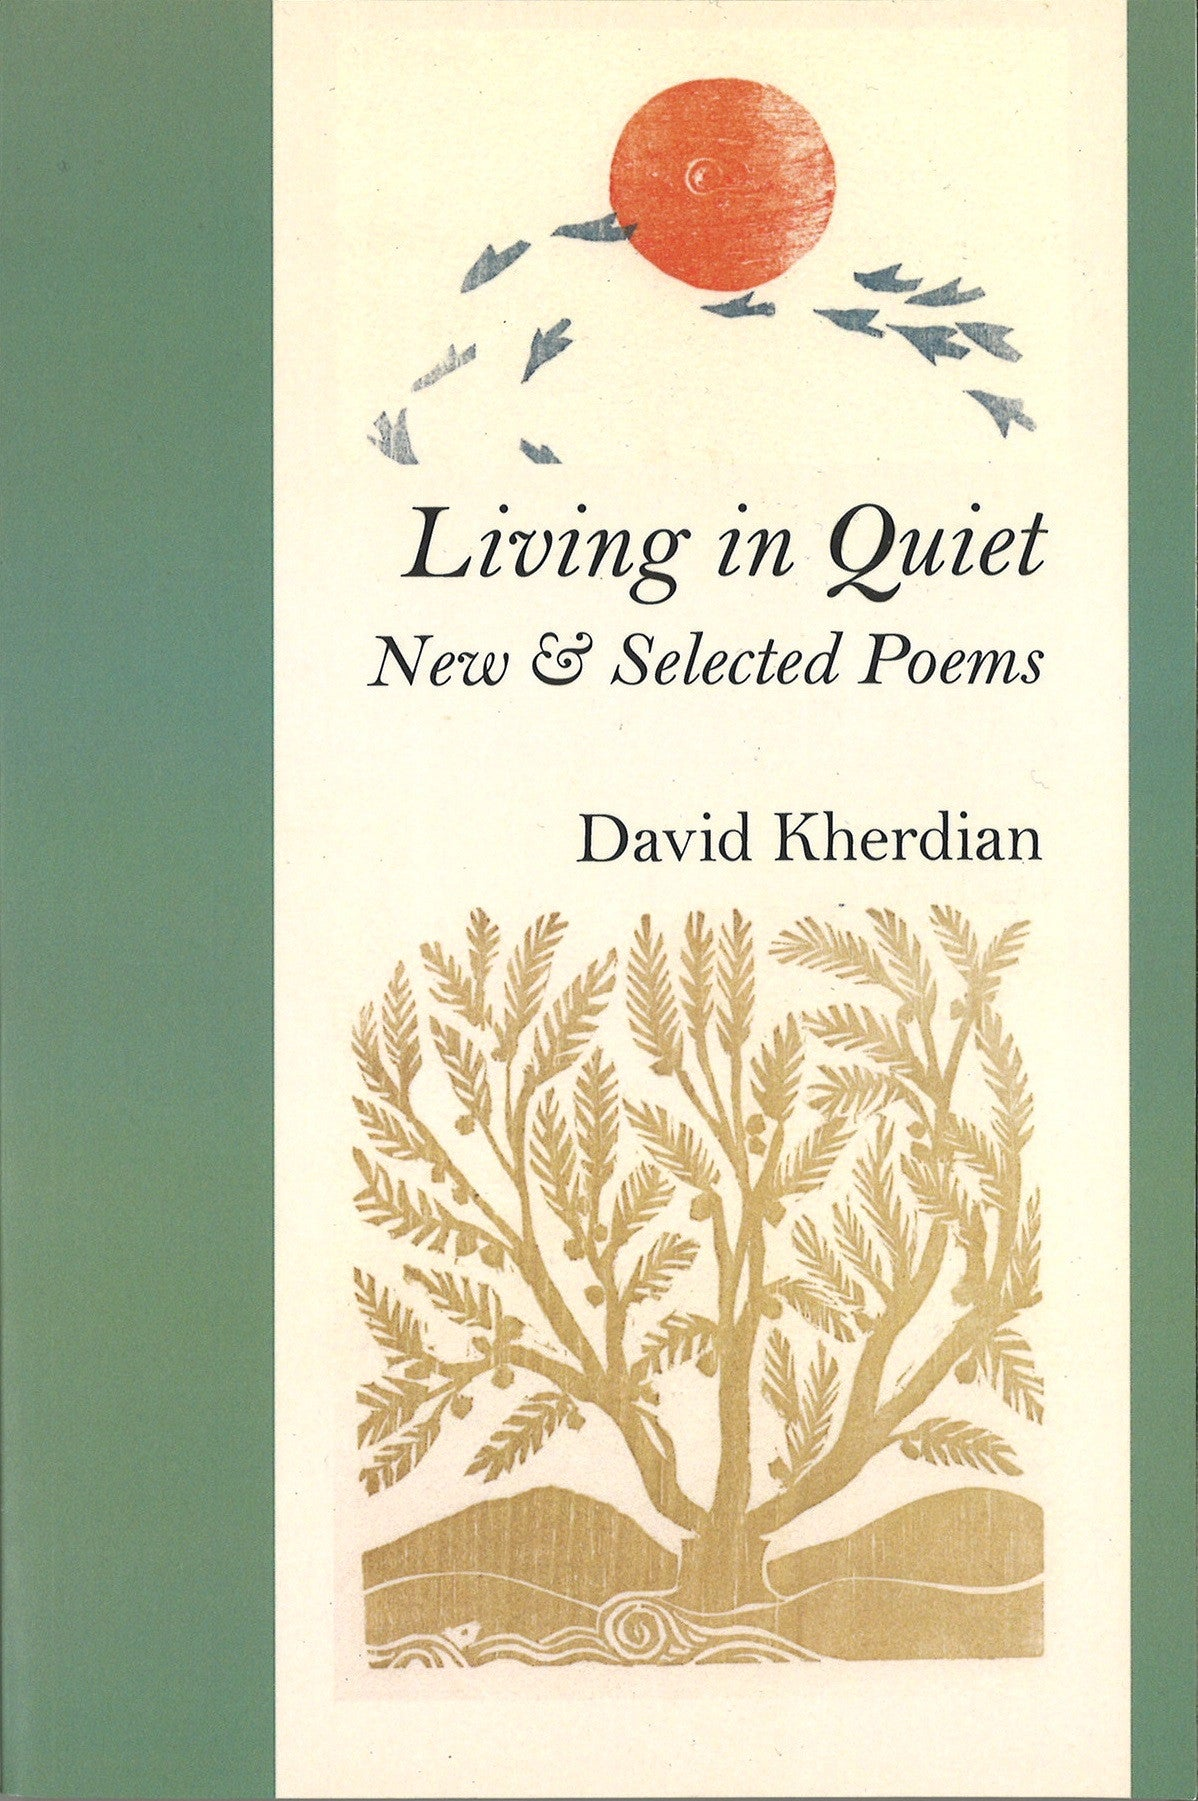 LIVING IN QUIET: New & Selected Poems